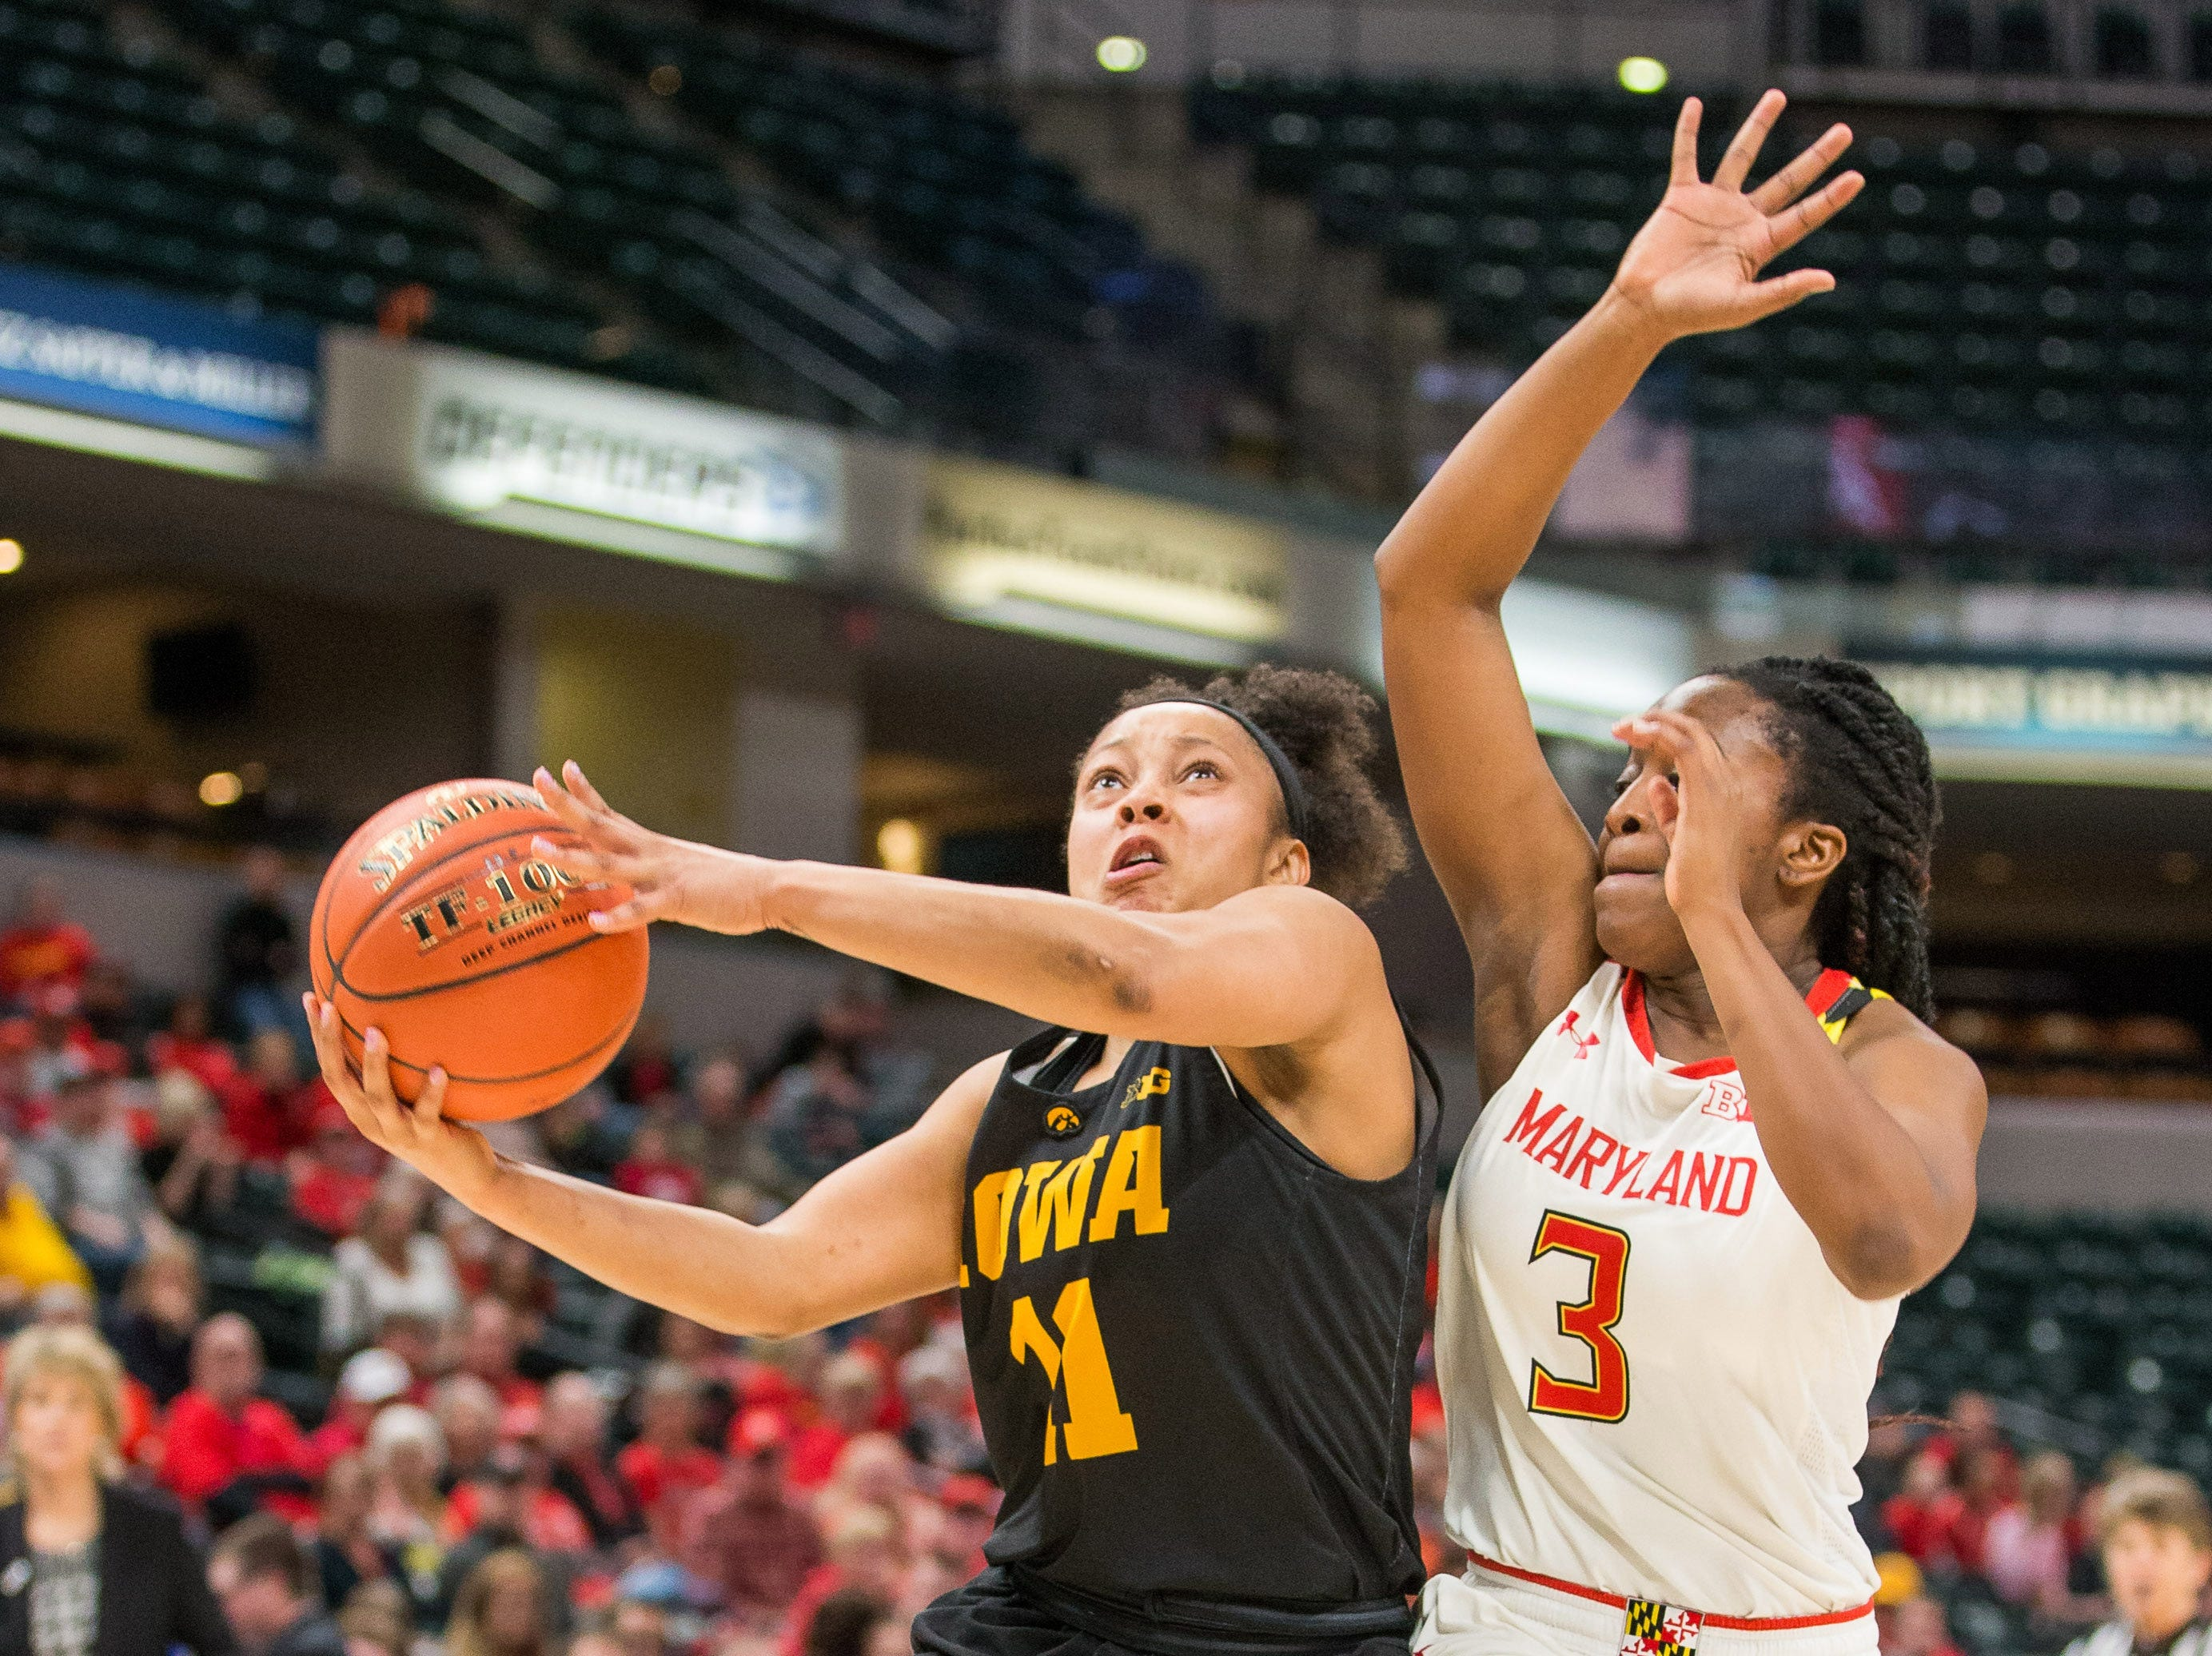 Iowa Hawkeyes guard Tania Davis (11) shoots the ball while Maryland Terrapins guard Channise Lewis (3) defends in the second half in the women's Big Ten Conference Tournament at Bankers Life Fieldhouse.